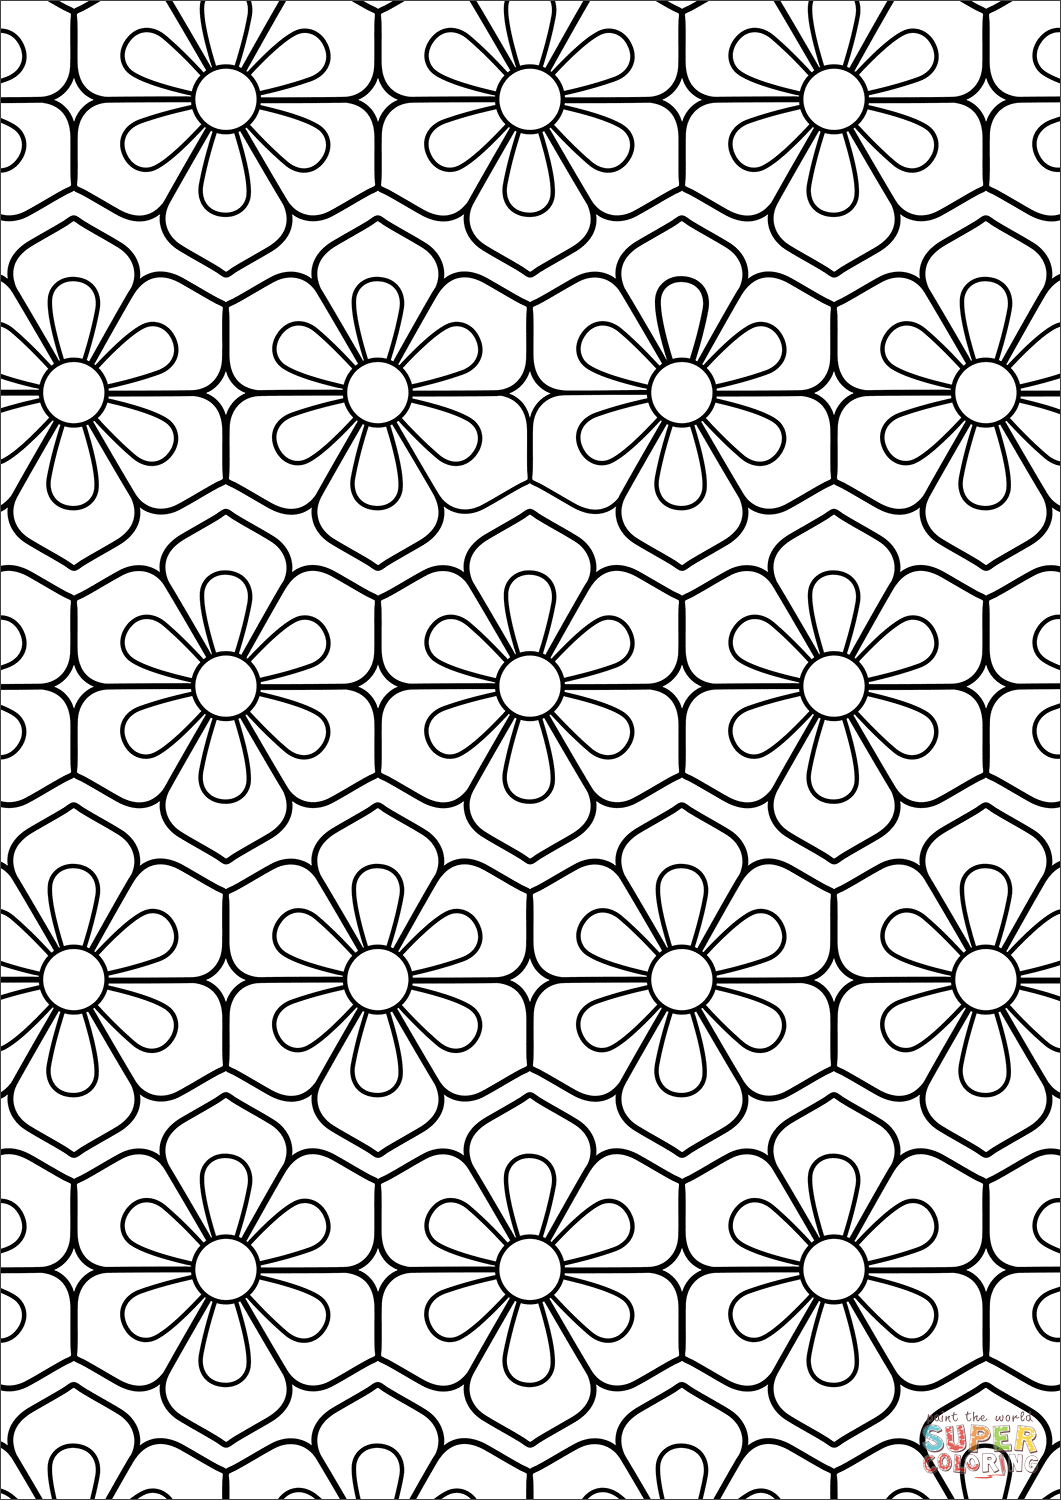 printable patterns to colour free printable geometric coloring pages for kids to colour printable patterns